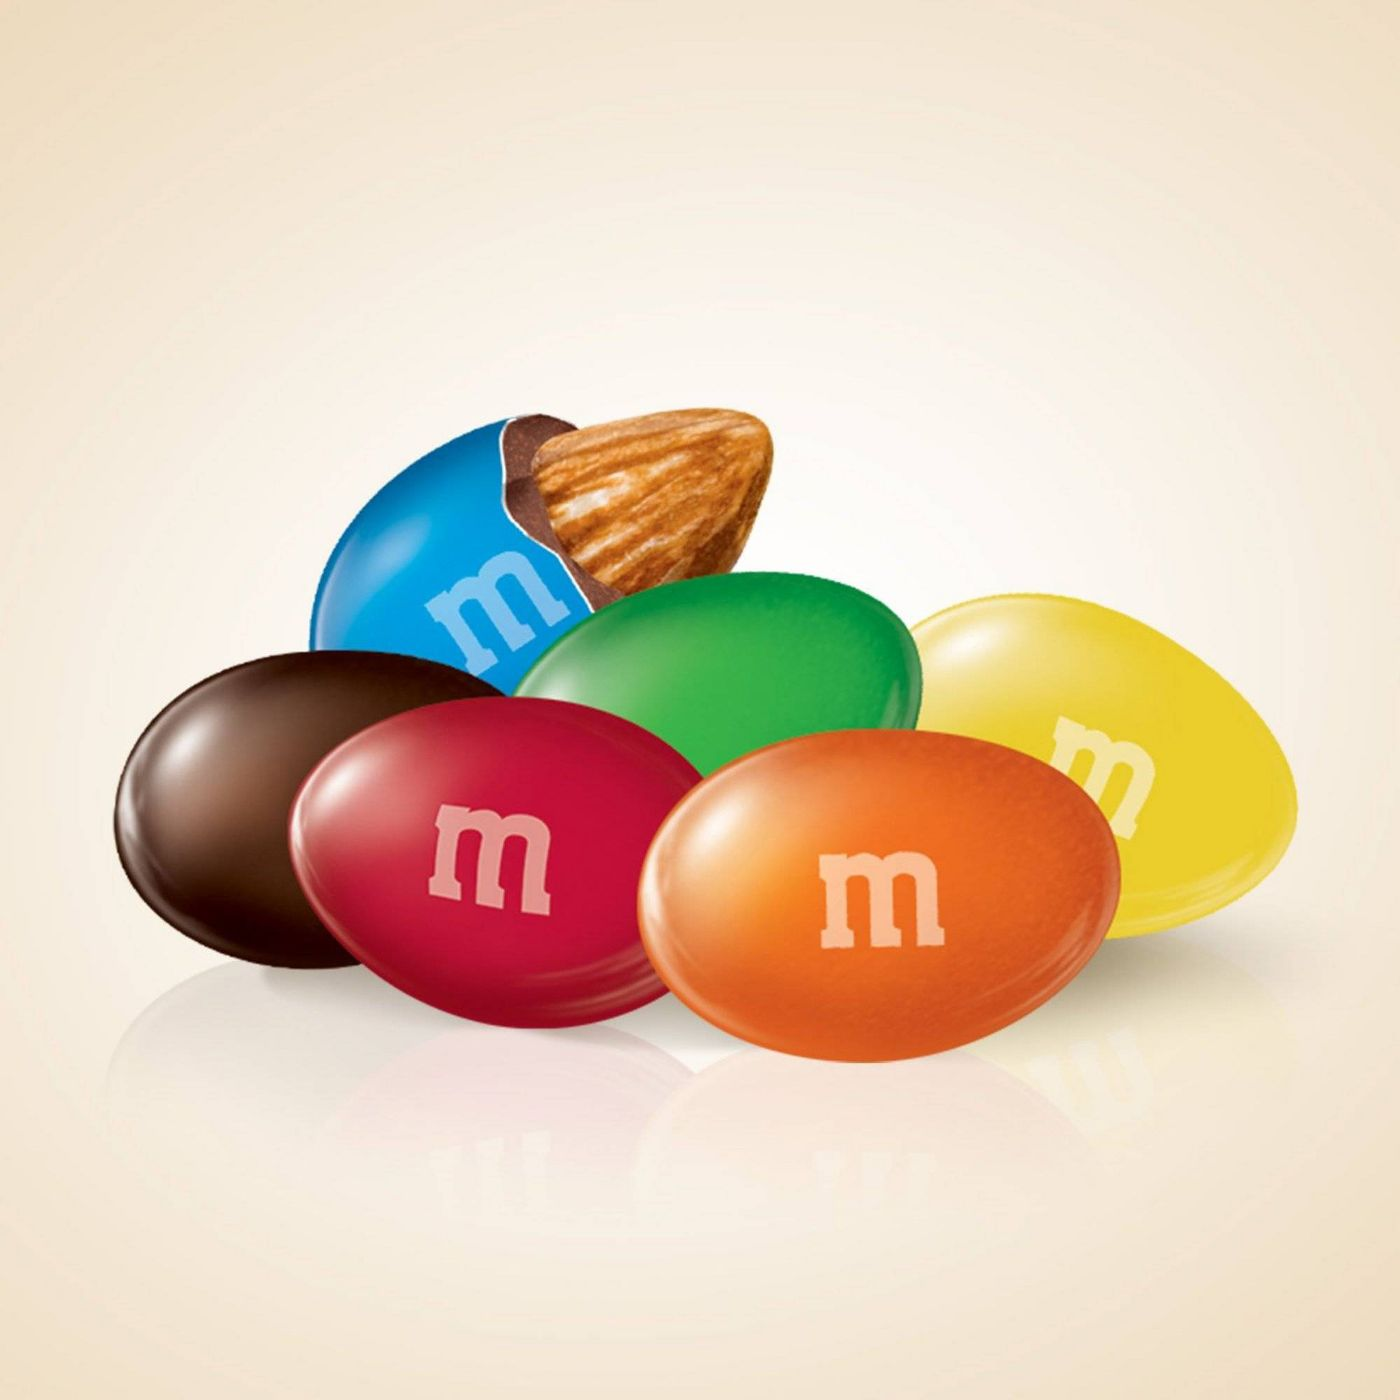 M&M's Almond Chocolate Candies, Sharing Size, 9.3oz